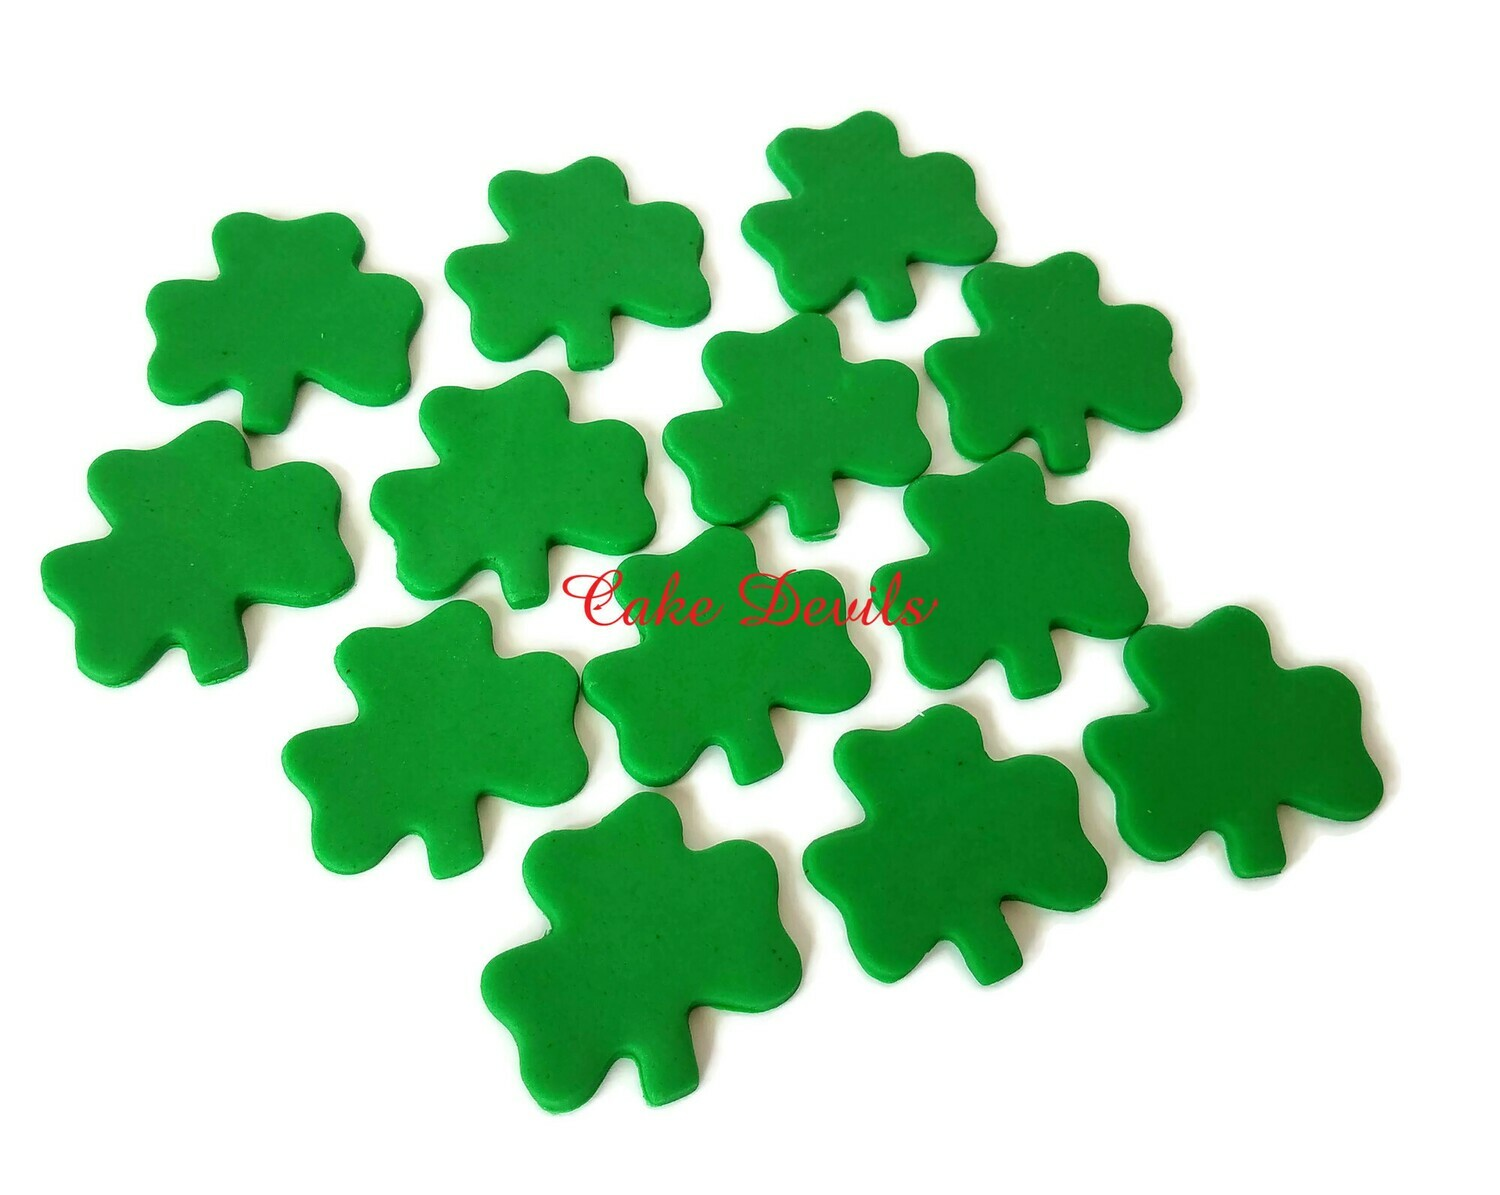 Fondant Clover Shamrock Cupcake Toppers for St Patrick's Day